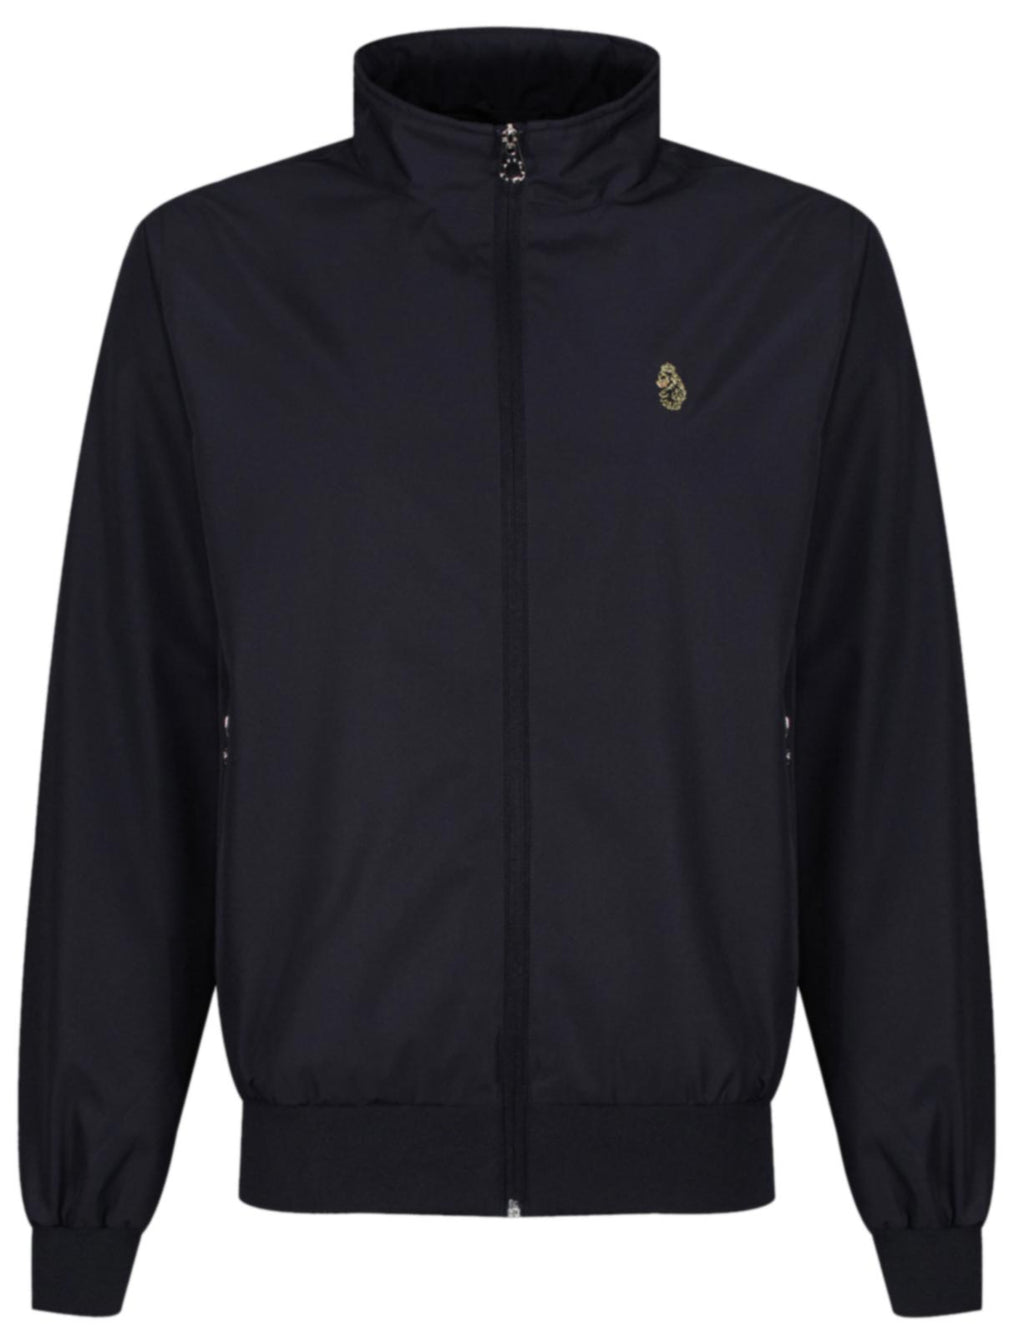 Luke 1977 Double Diamond Jacket Navy